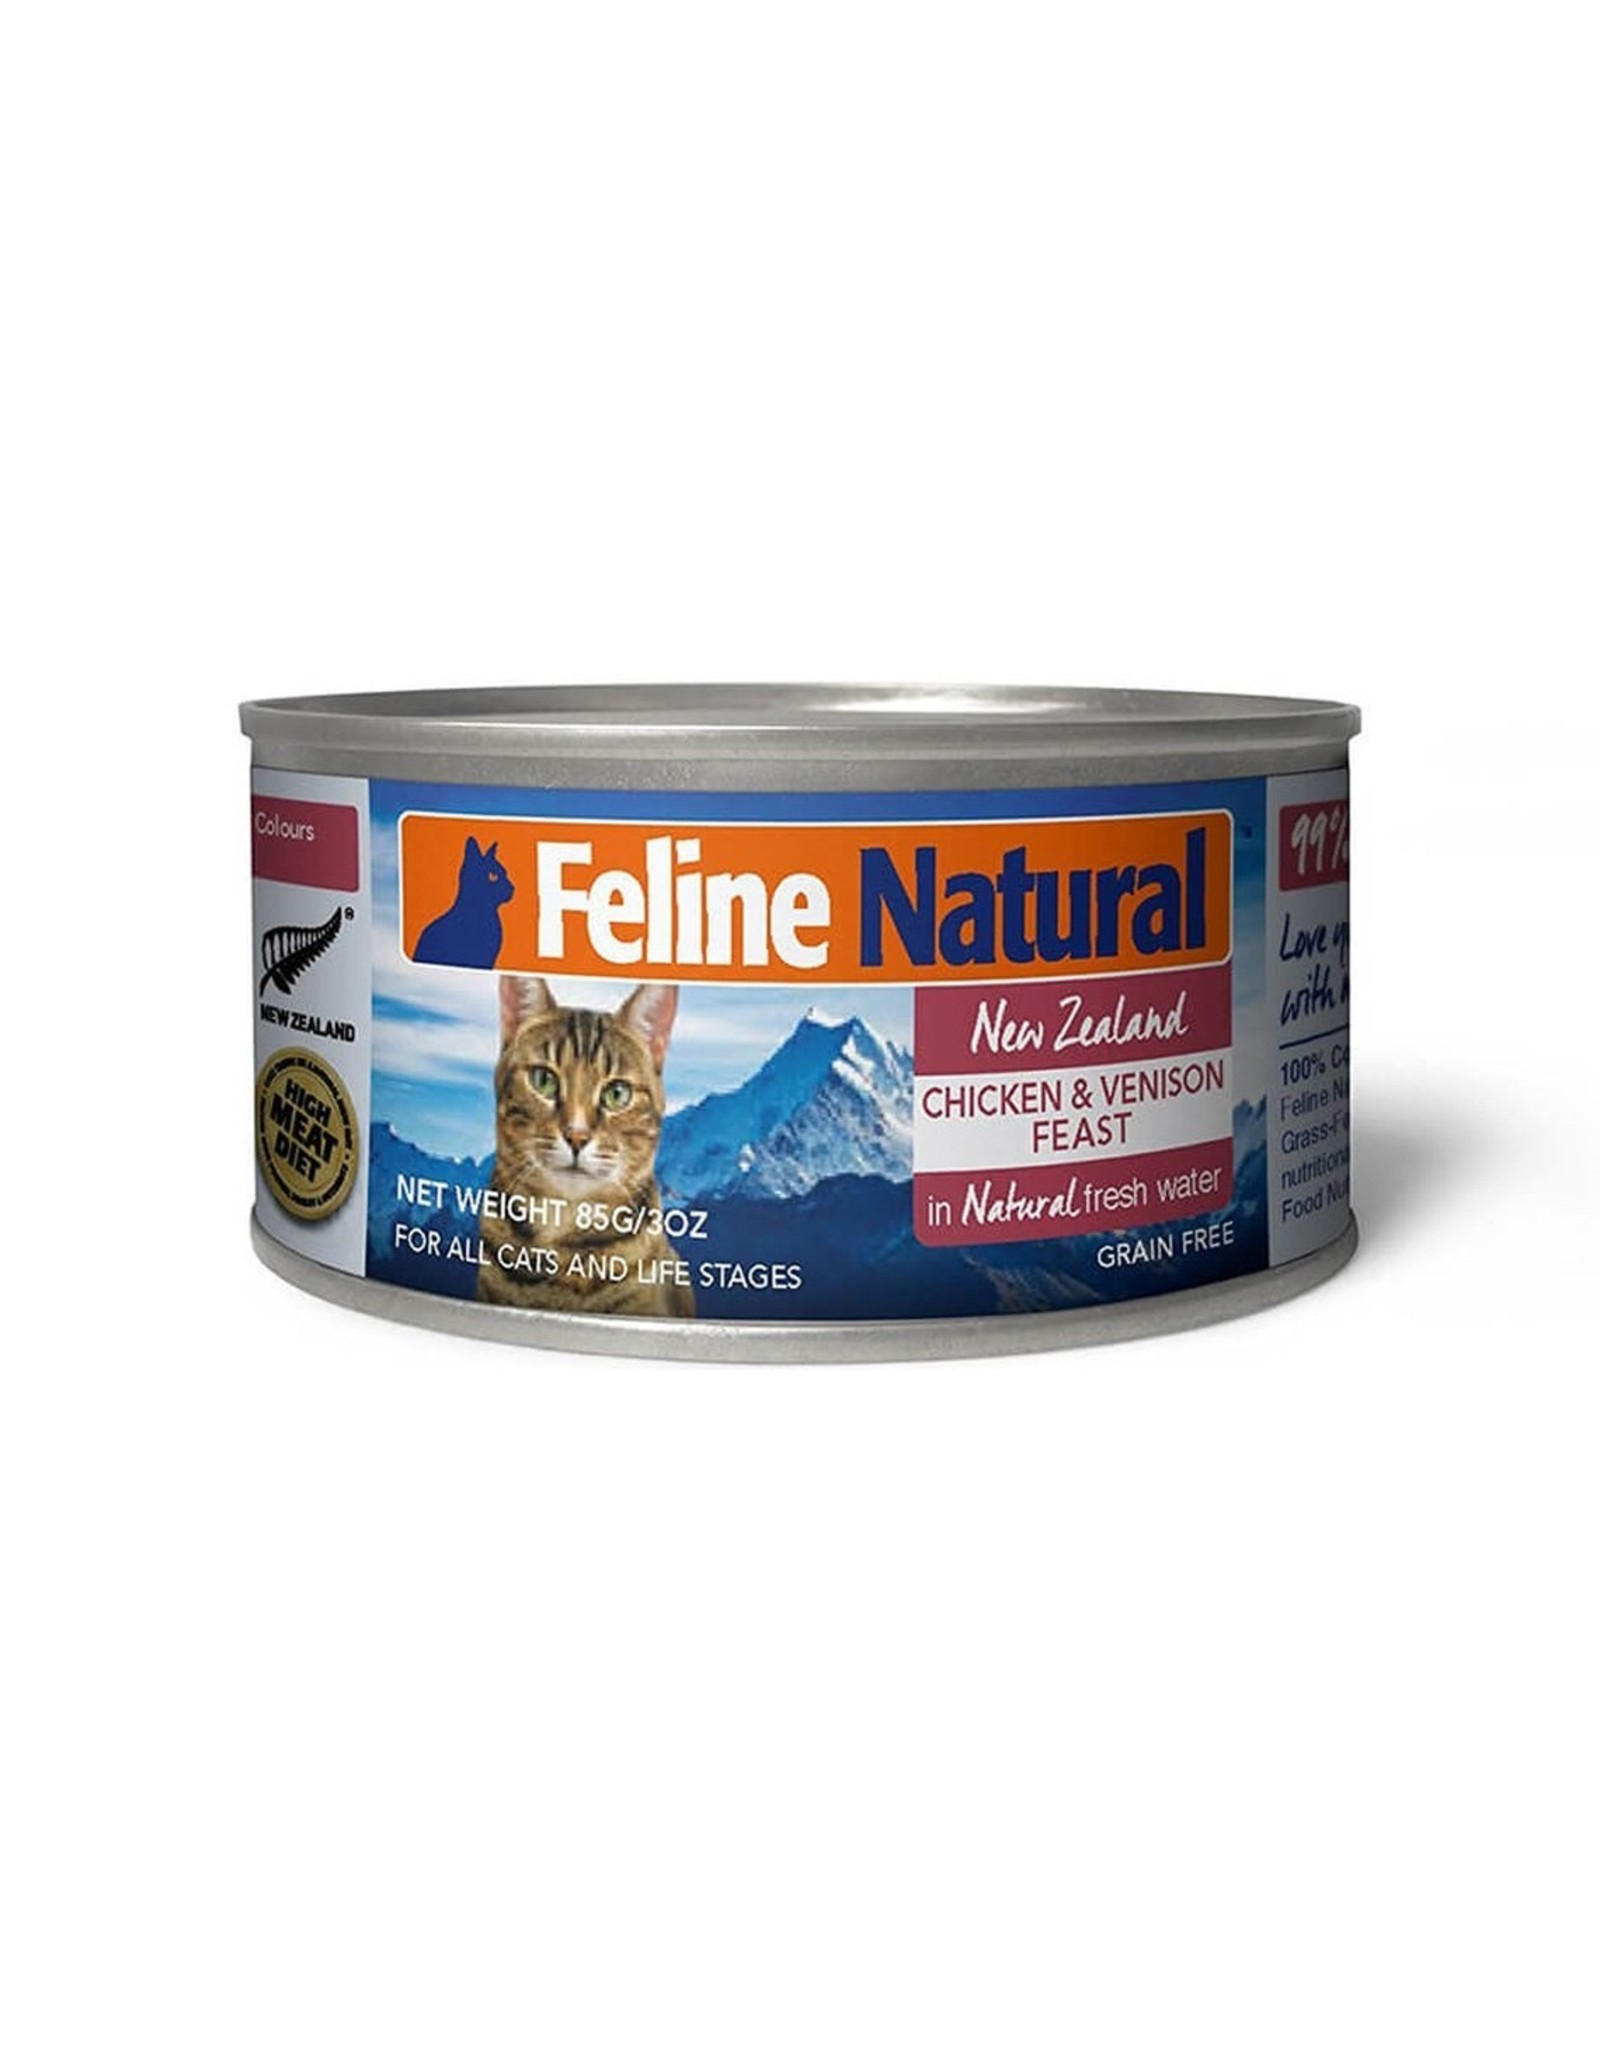 Feline Natural Feline Natural Chicken and Venison Feast